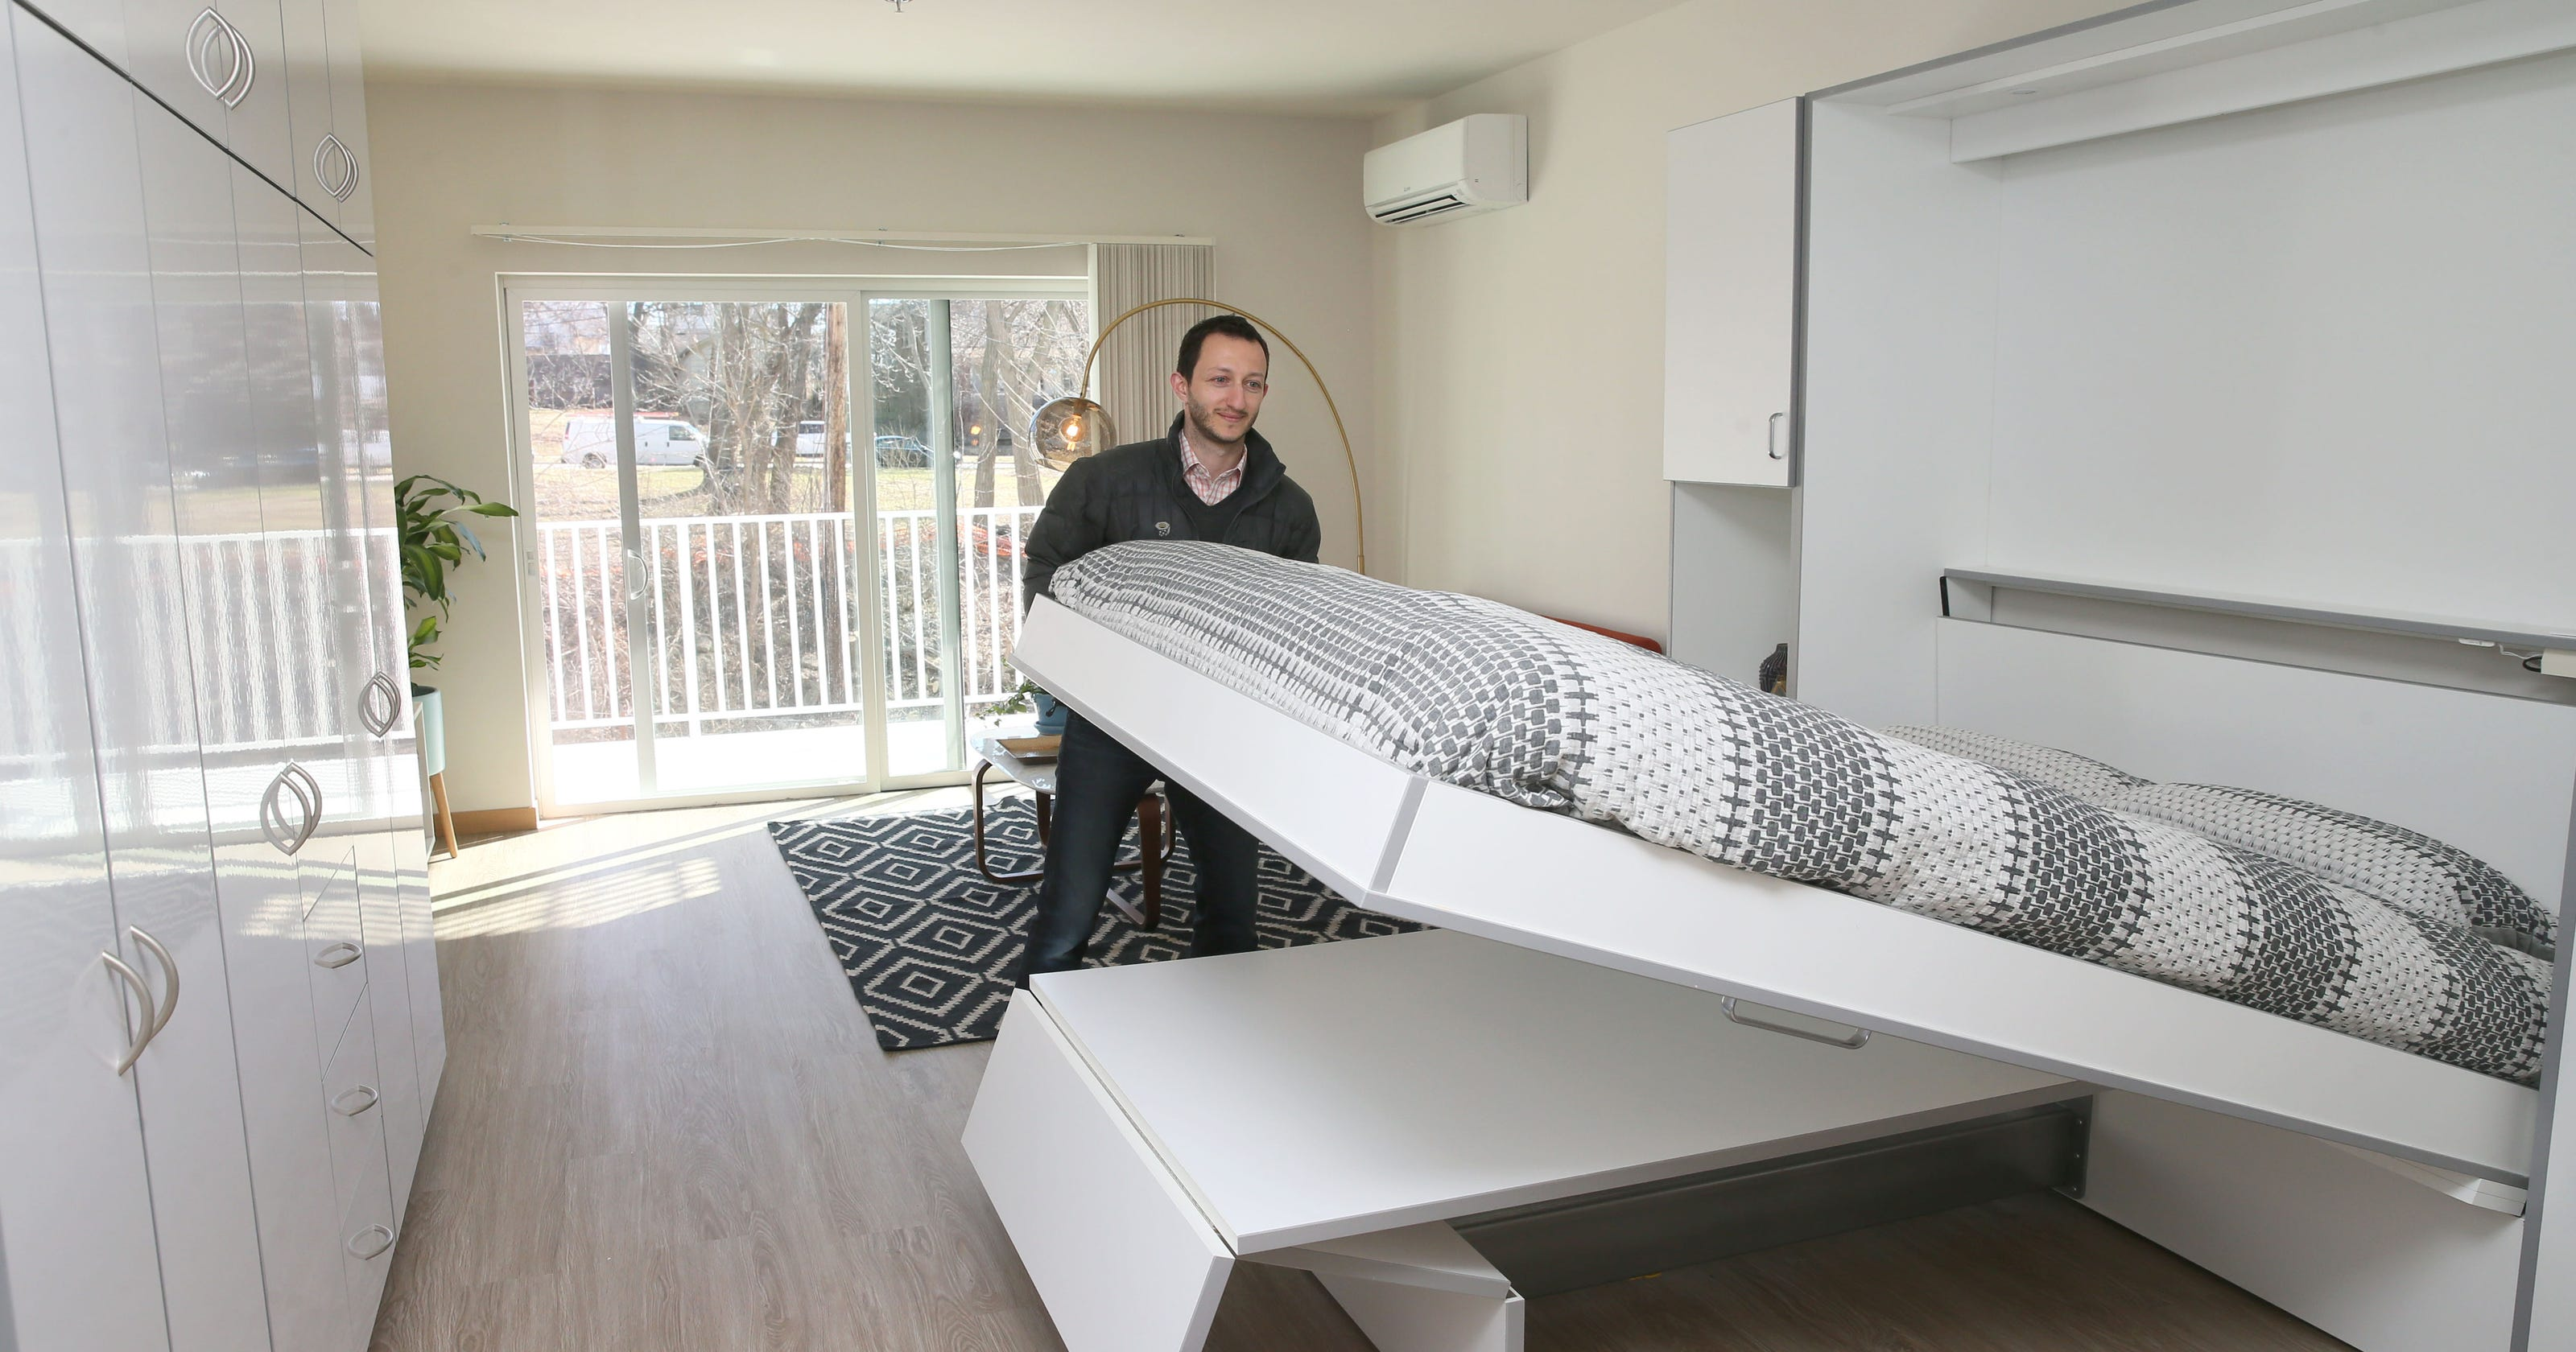 Micro apartments make the most from little space as developers pitch ...